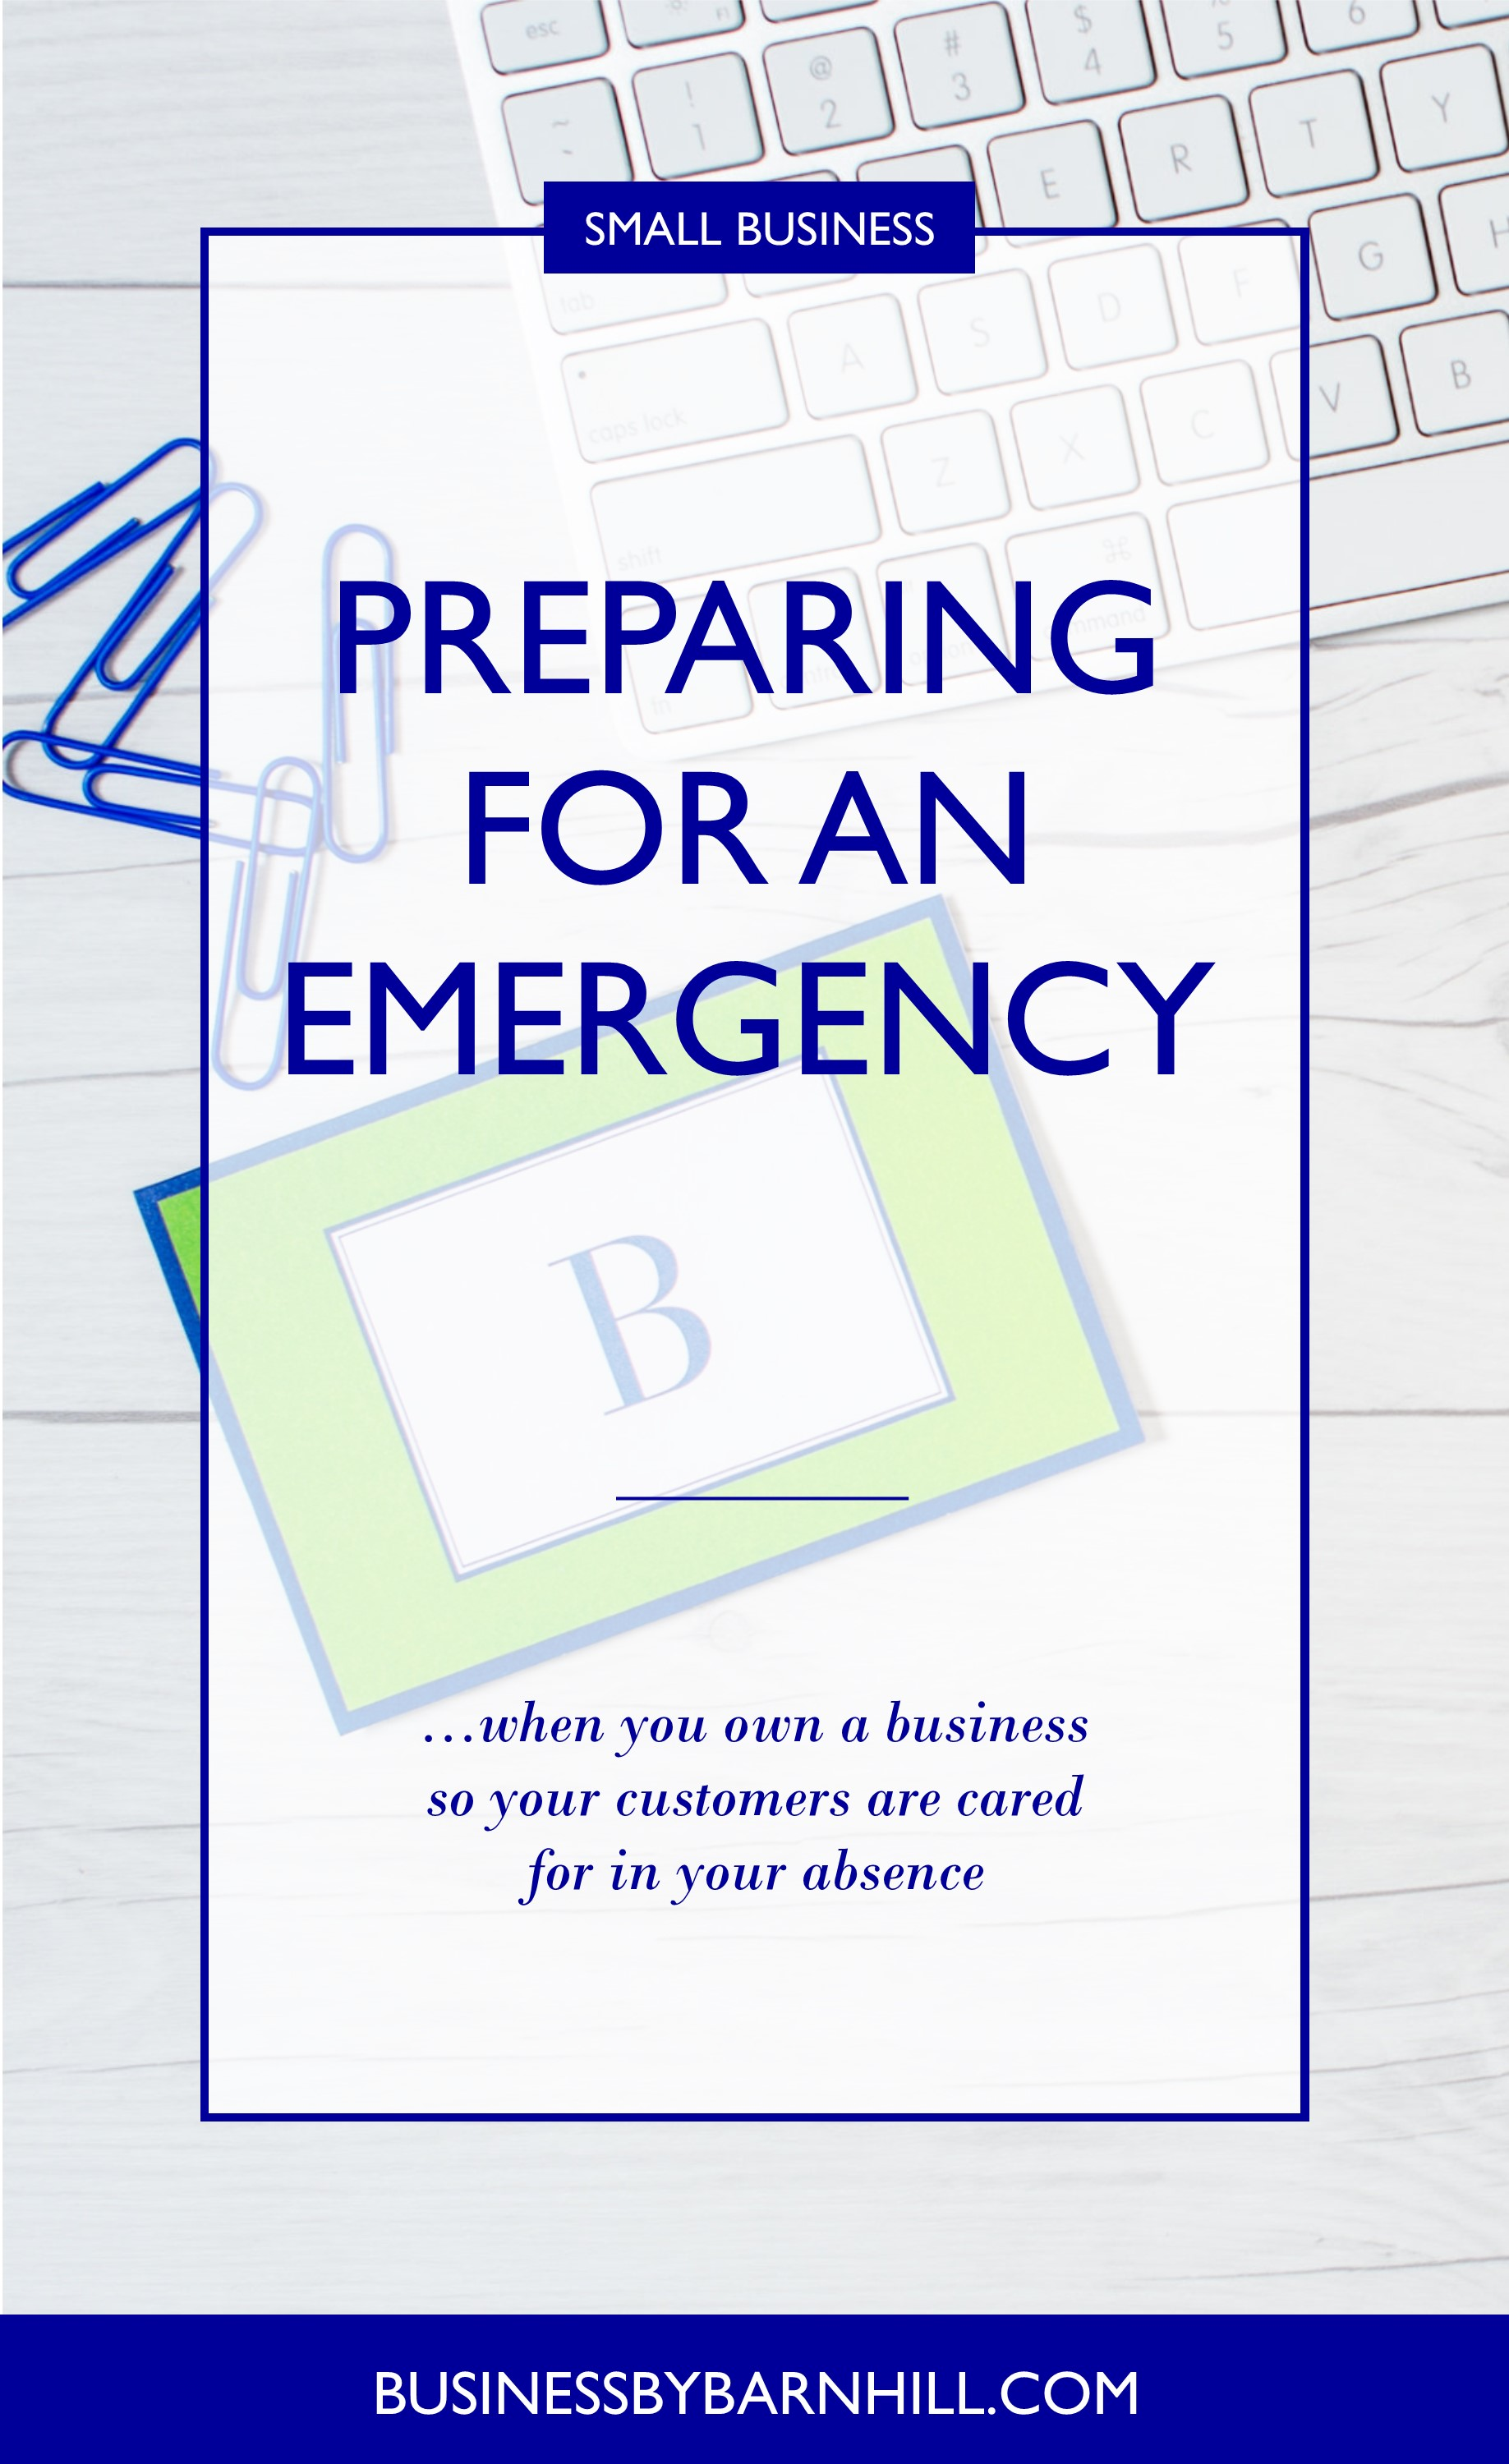 business by barnhill pinterest preparing for an emergency when you own a business 1.jpg